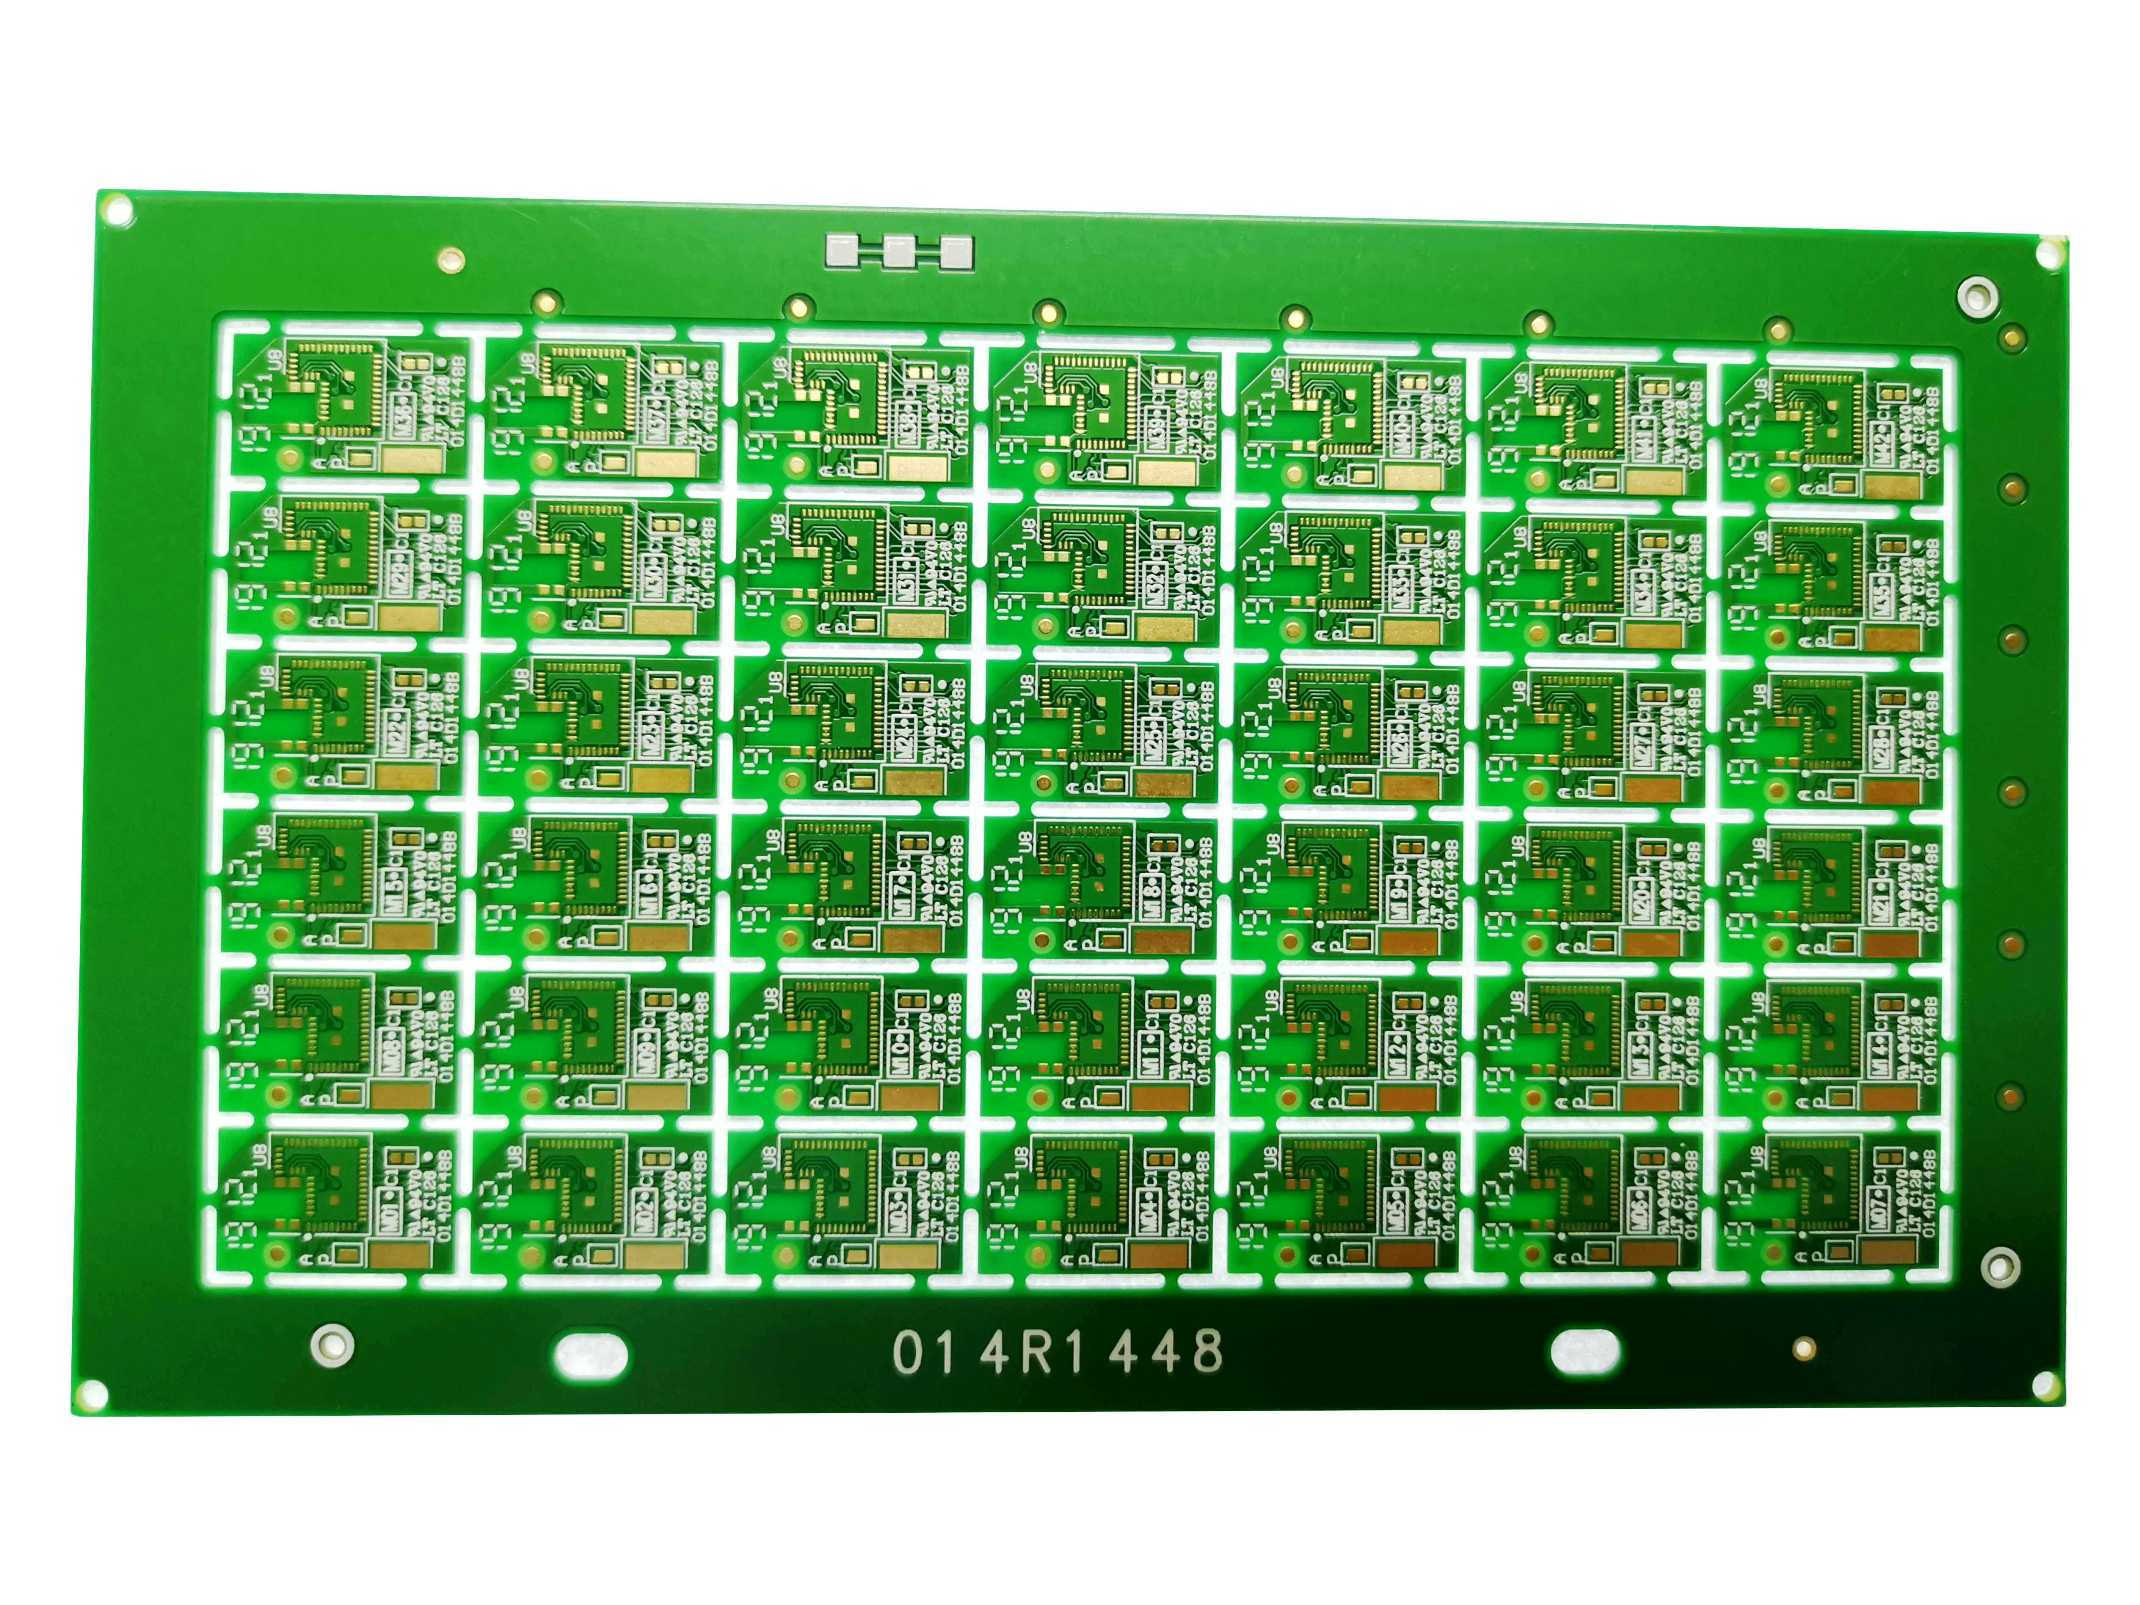 铜浆塞孔板@@@PCB with Copper paste plugging vias and capped with Cu plating